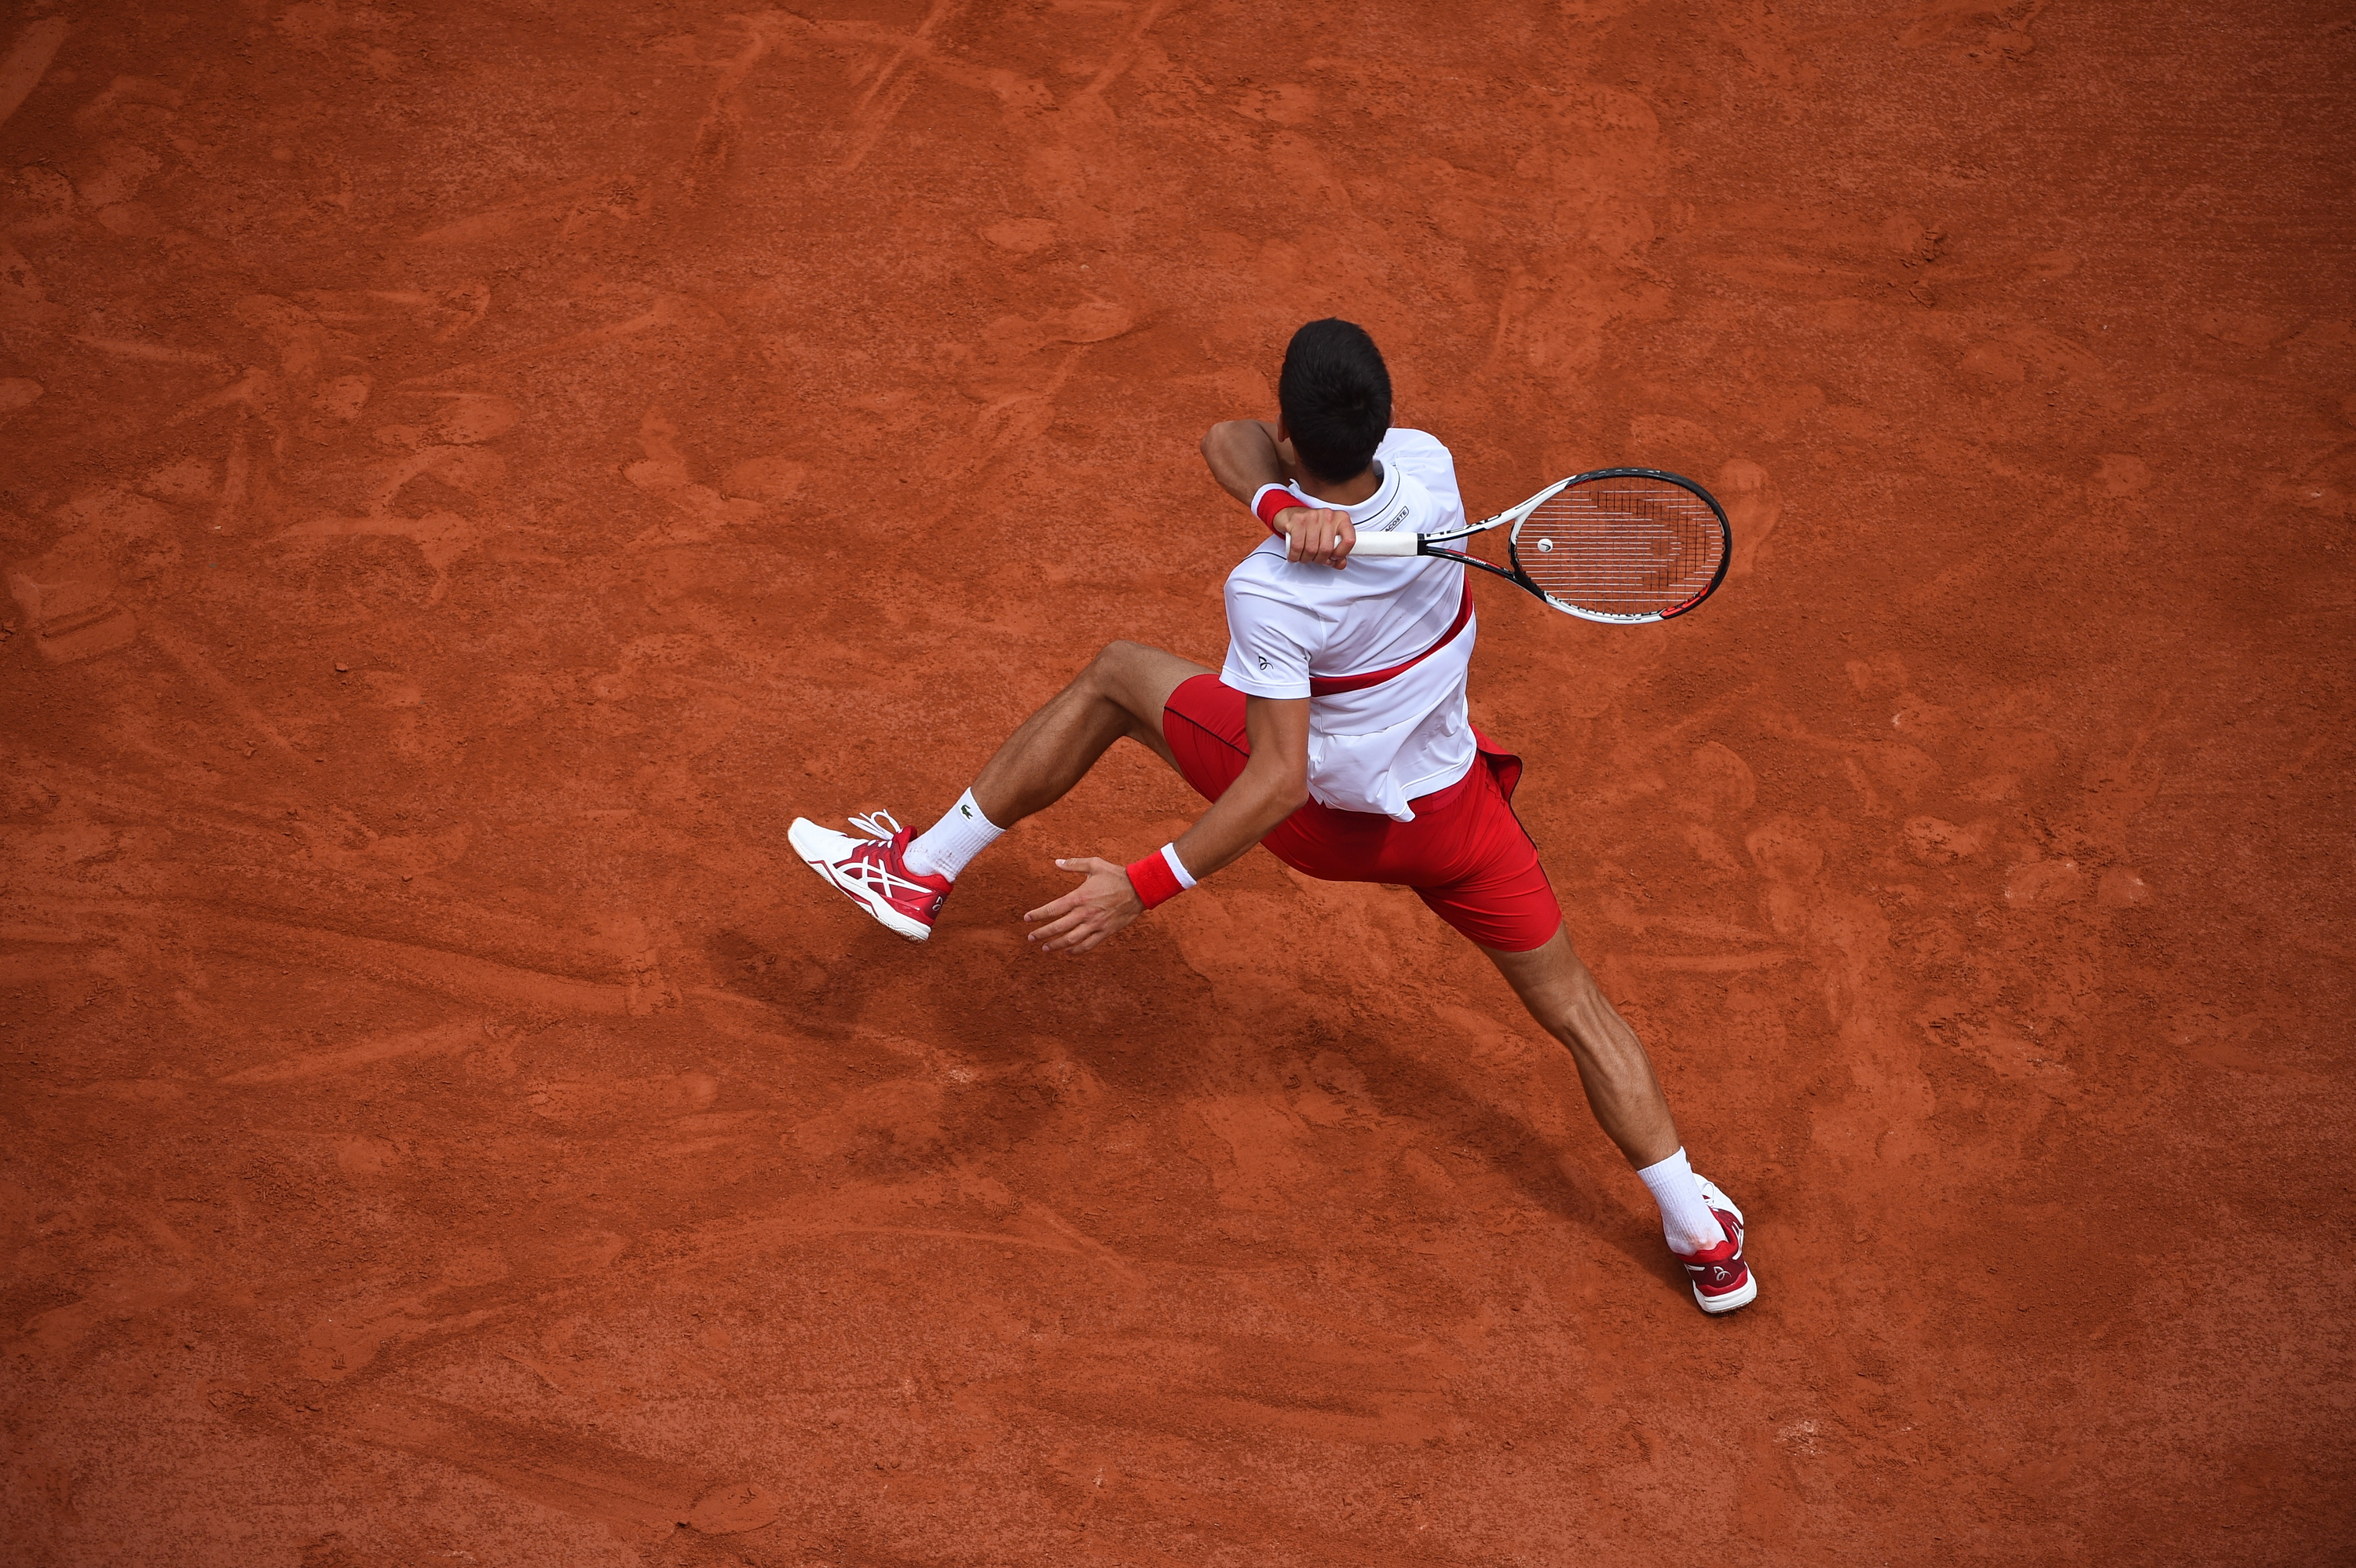 Dislocated Novak Djokovic hitting a forehand at Roland-Garros 2018